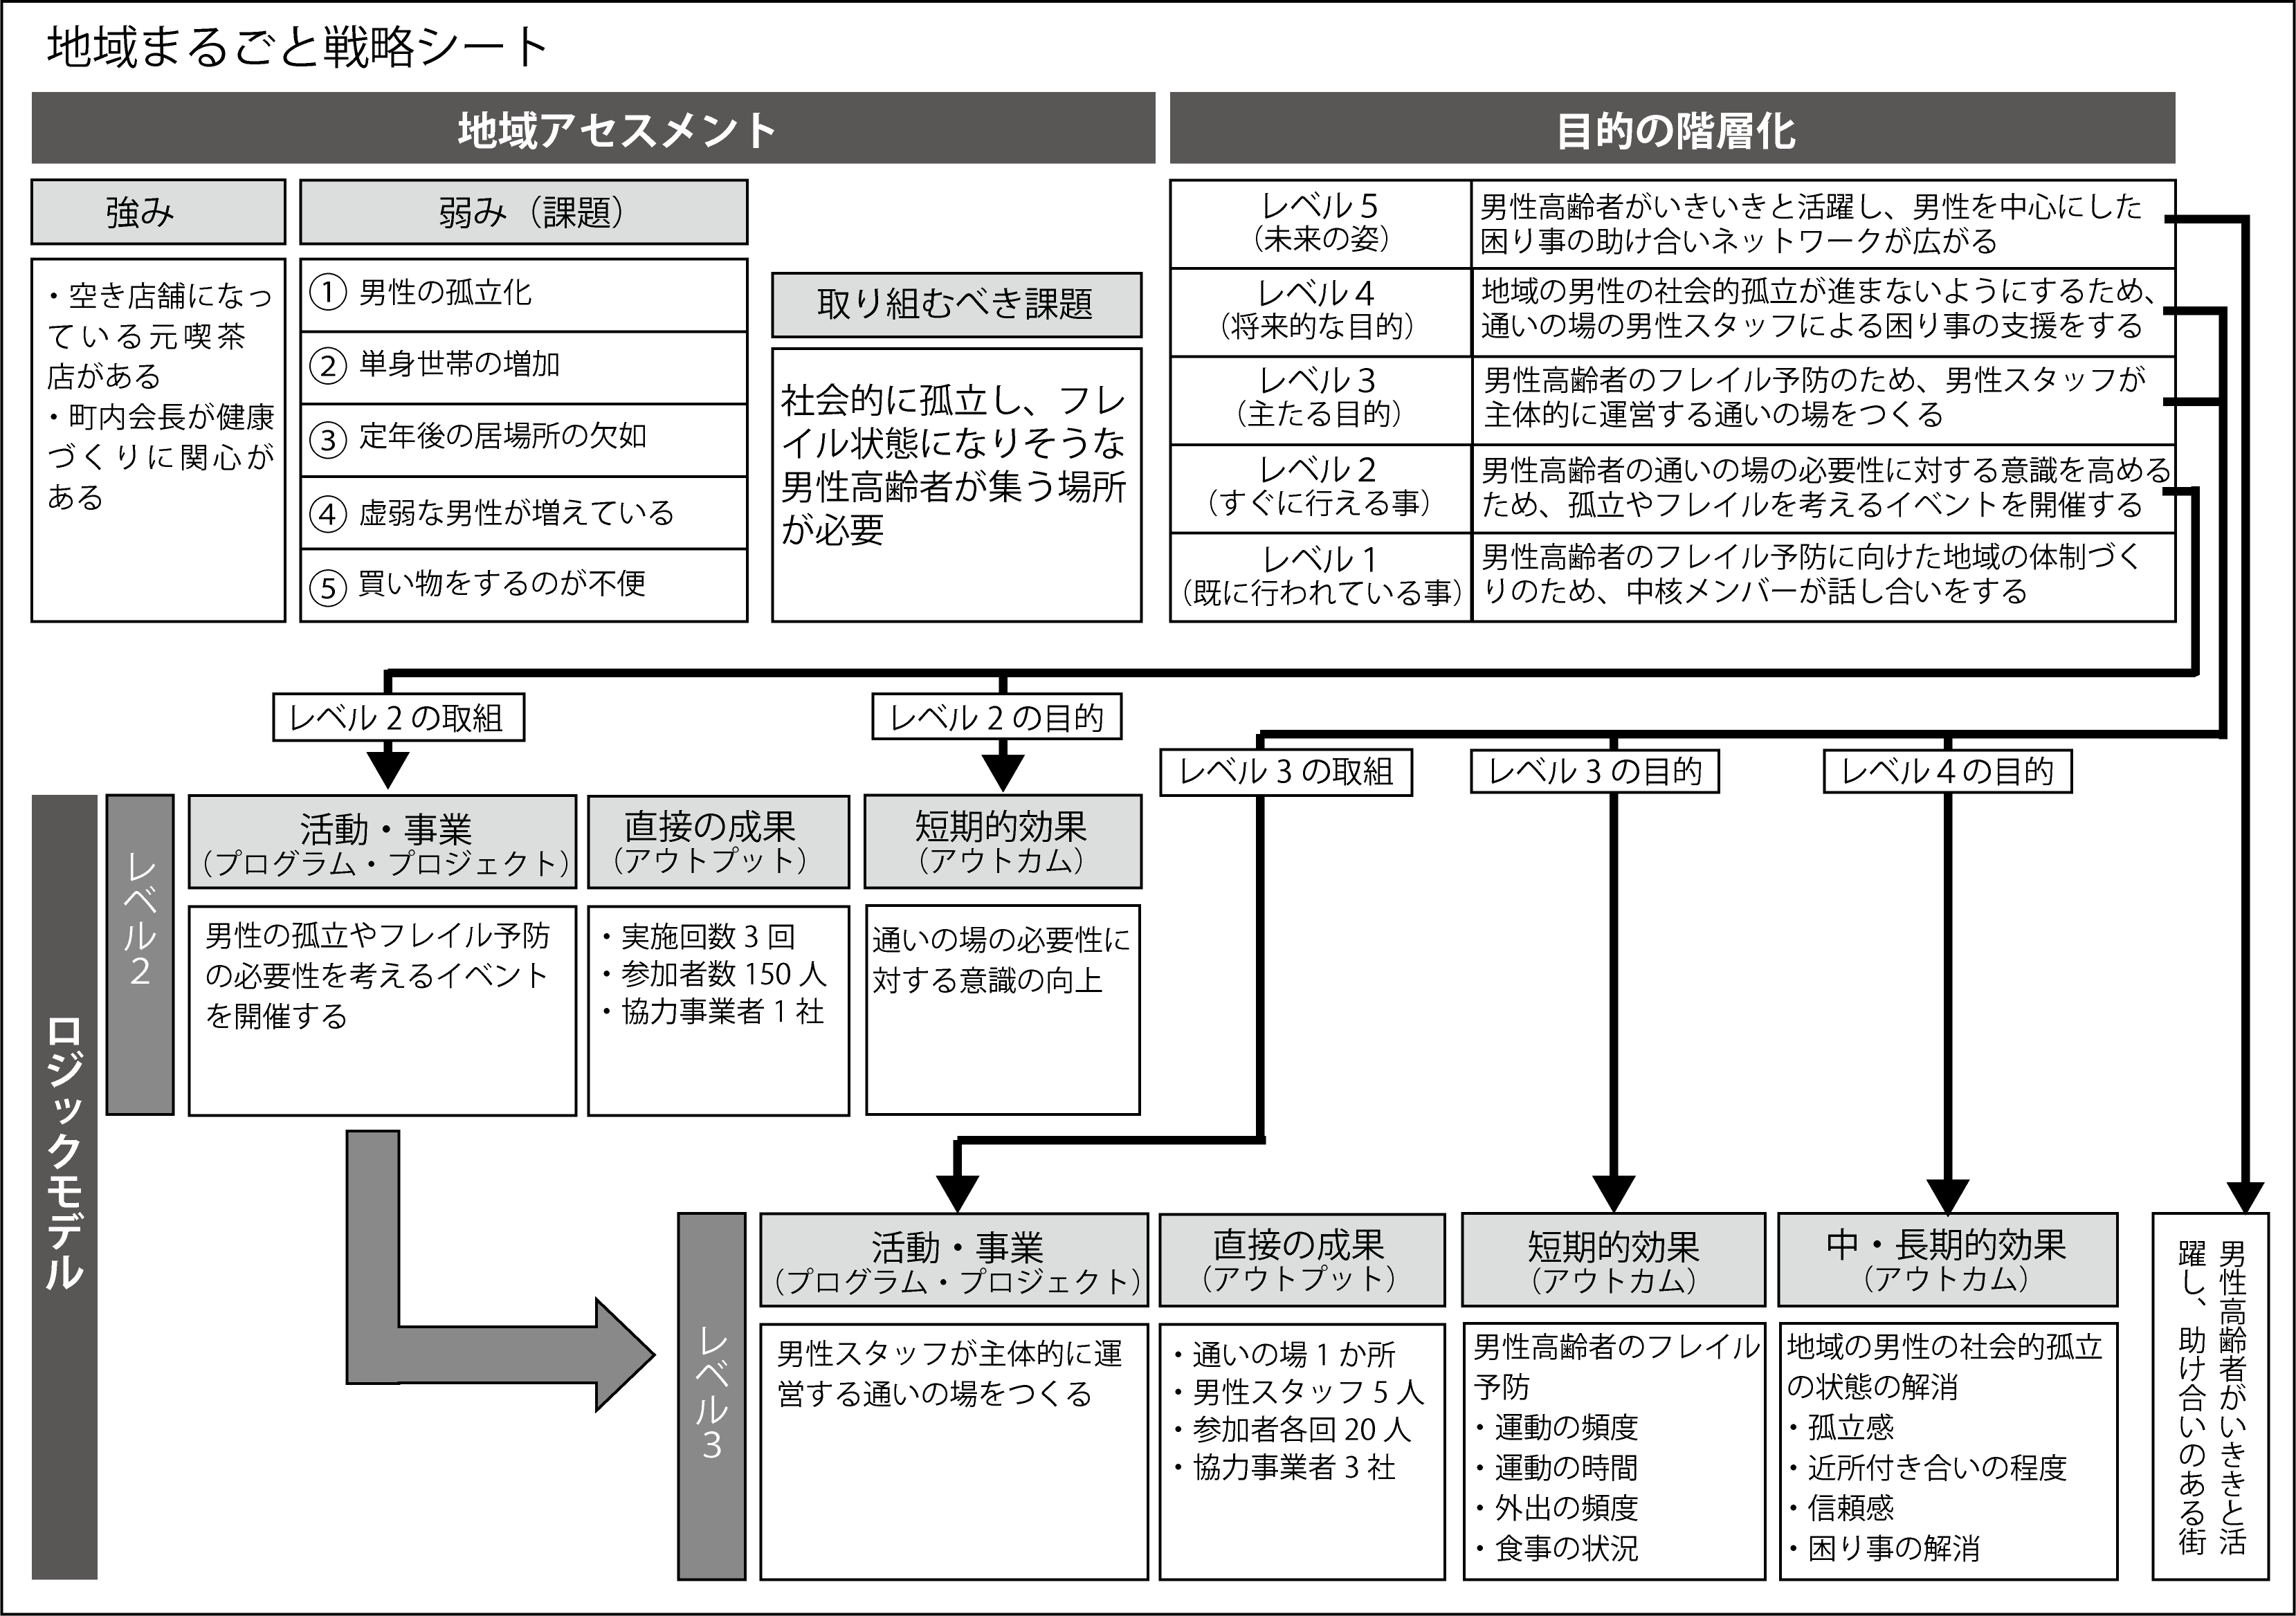 P12地域まるごと戦略シート図.png